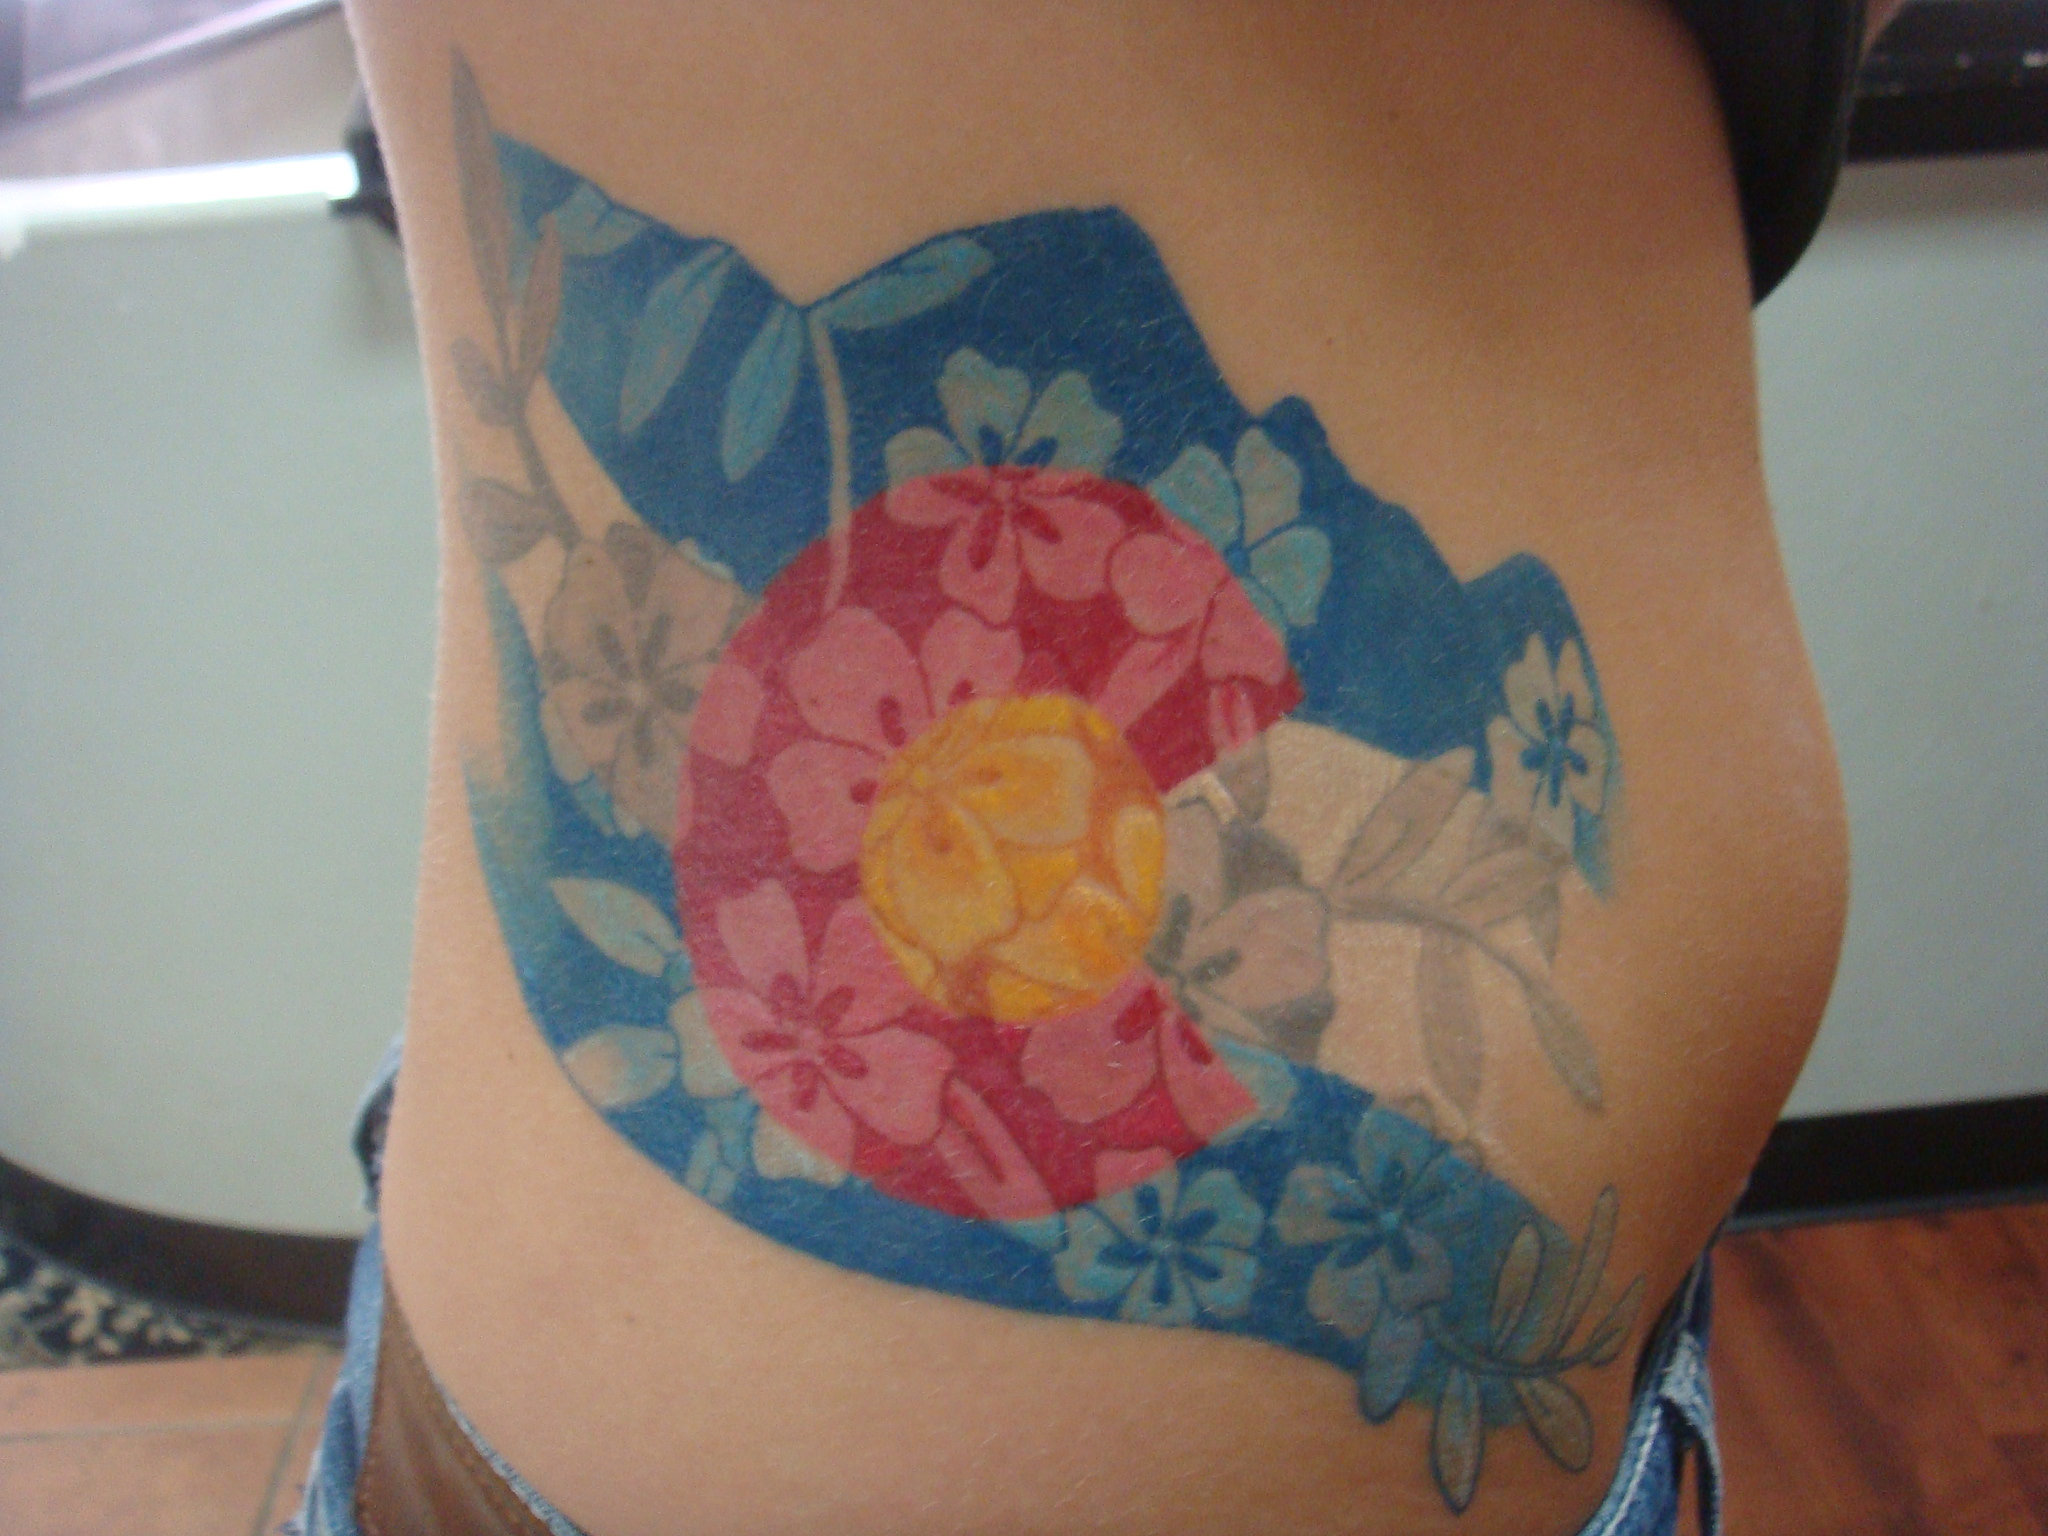 Westside tattoo and piercing best studio in colorado for Best tattoos in colorado springs